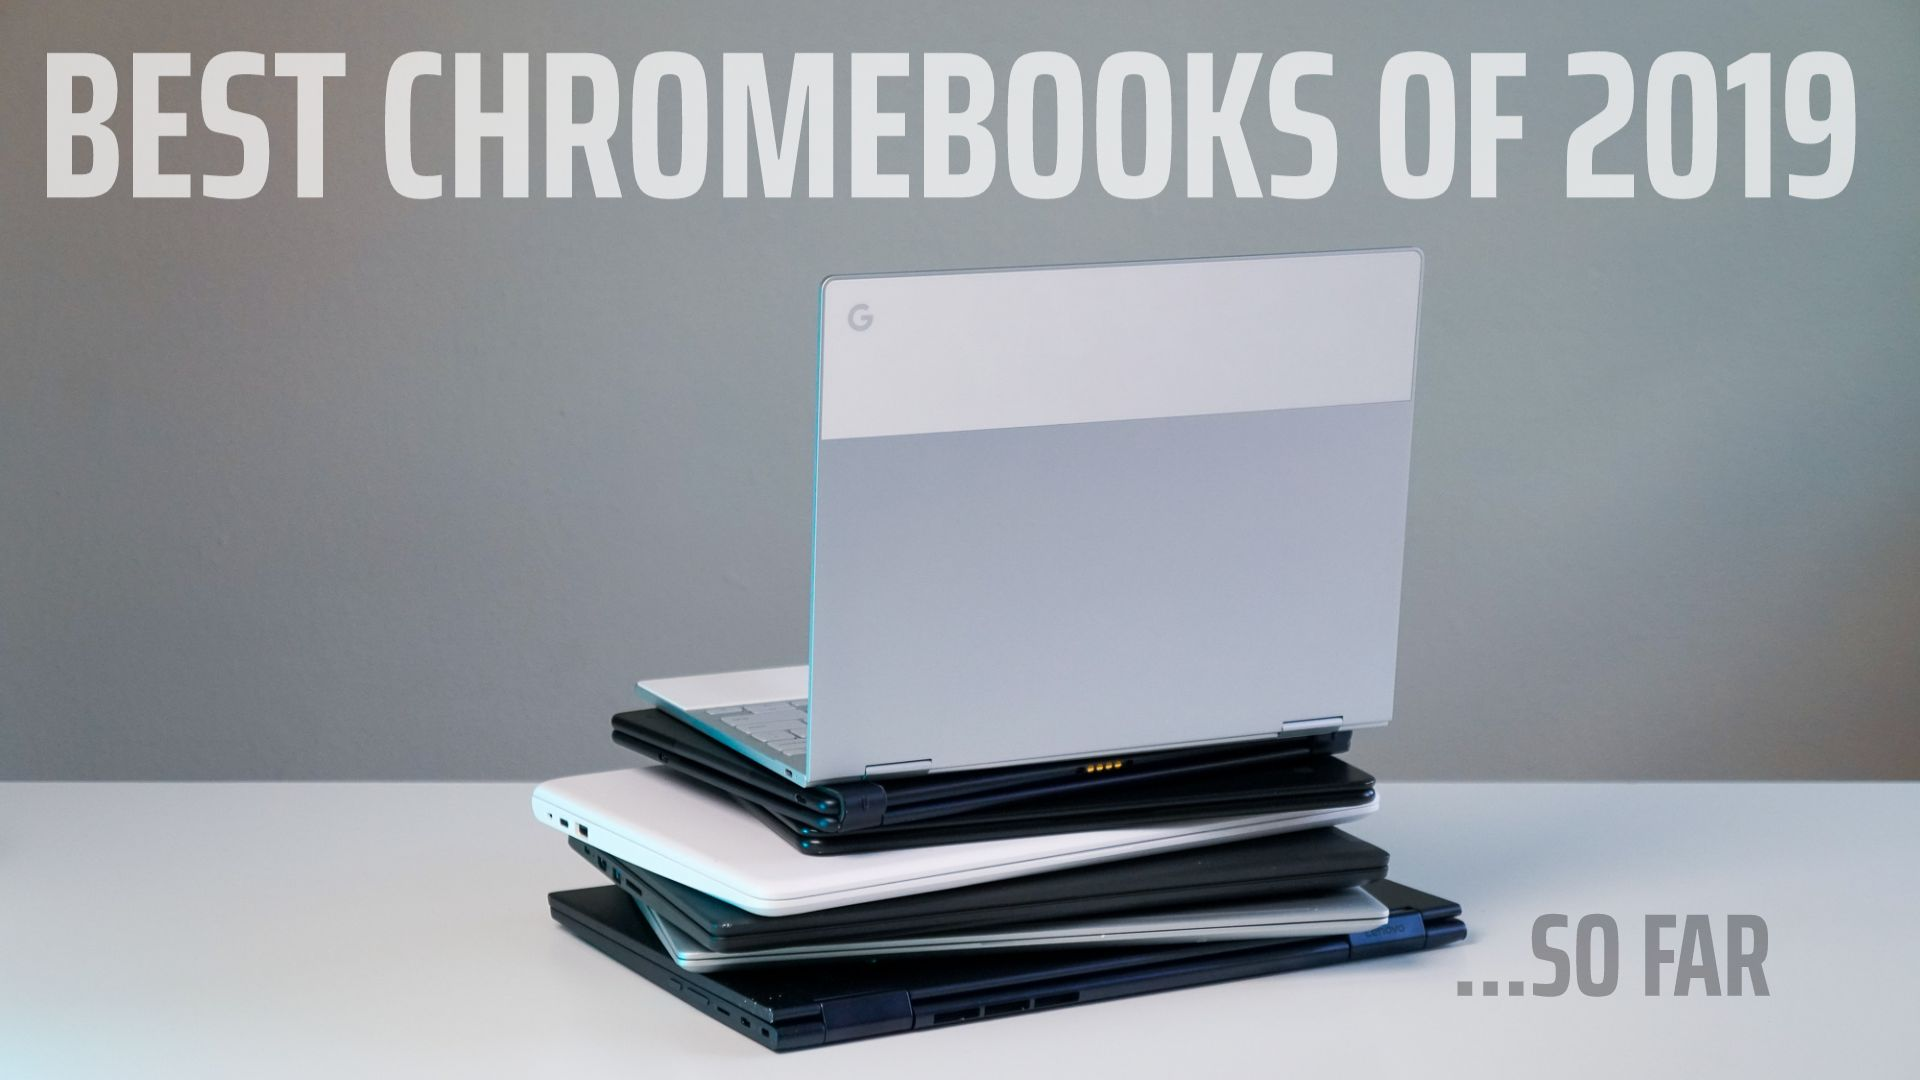 The best Chromebooks of 2019 so far